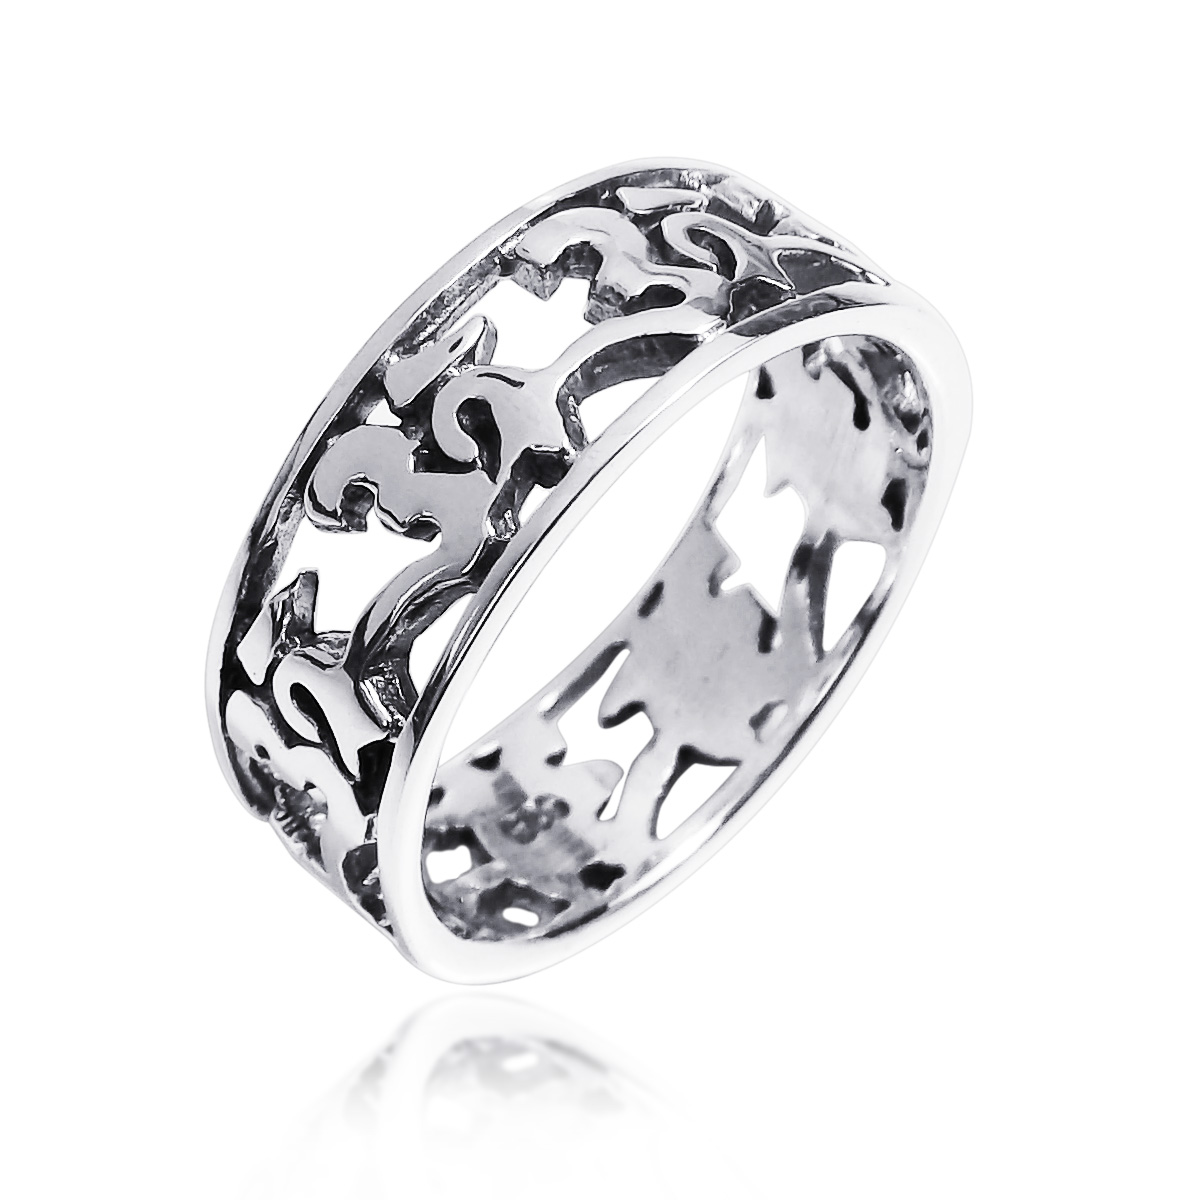 Peaceful eternity aum or ohm symbol 925 silver band ring 6 aeravida product biocorpaavc